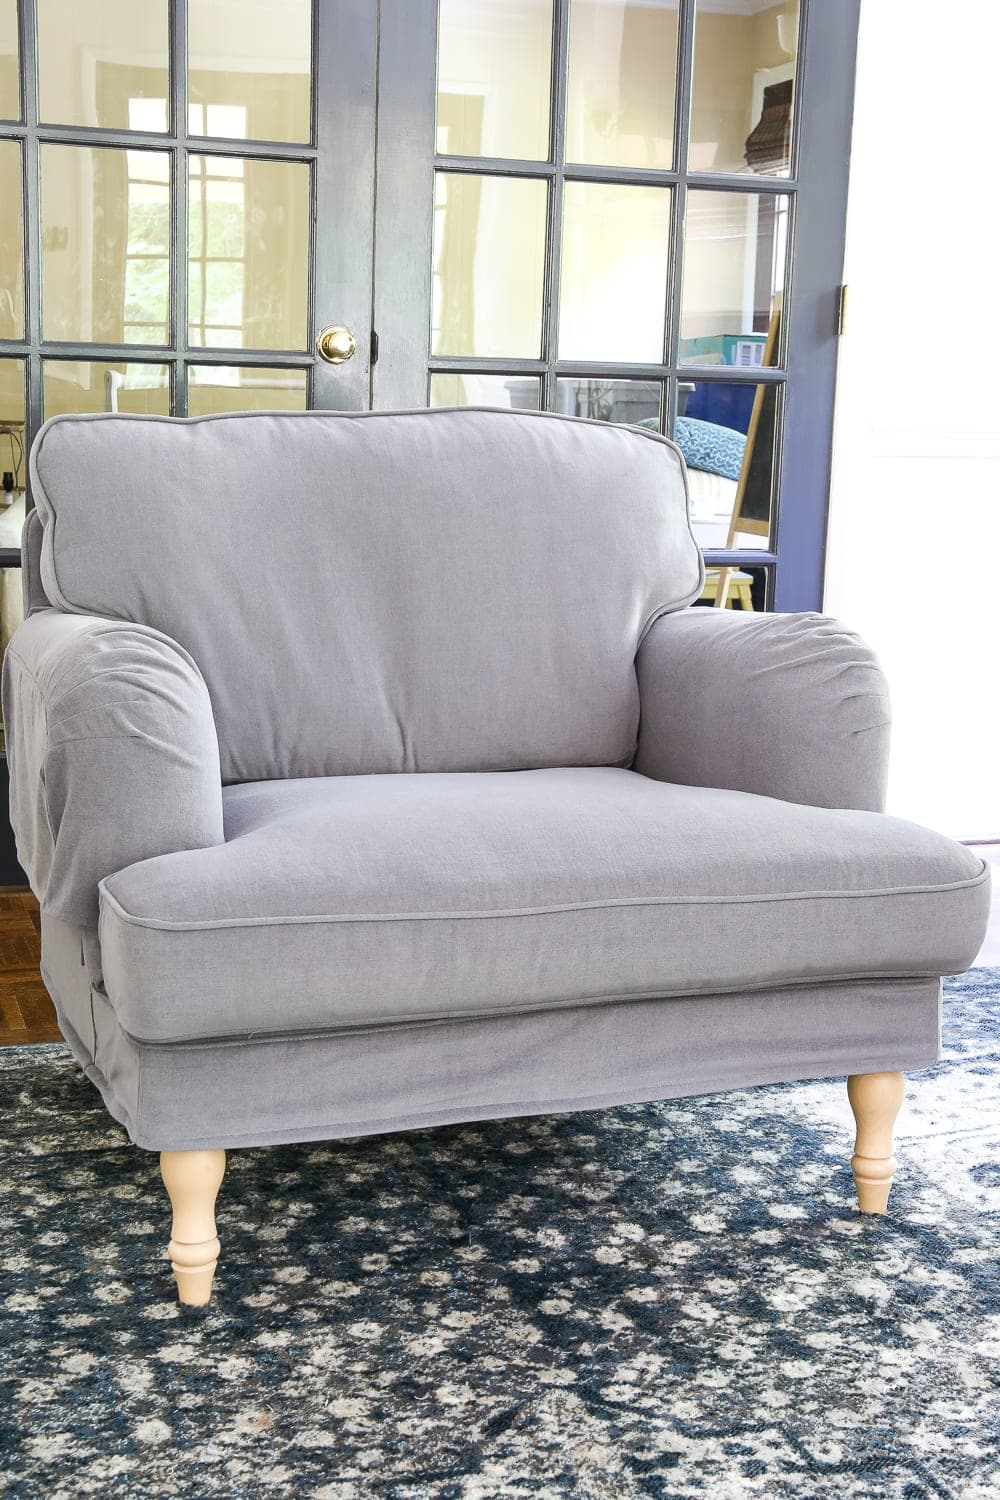 Ikea39s new sofa and chairs and how to keep them clean for Sofa chair